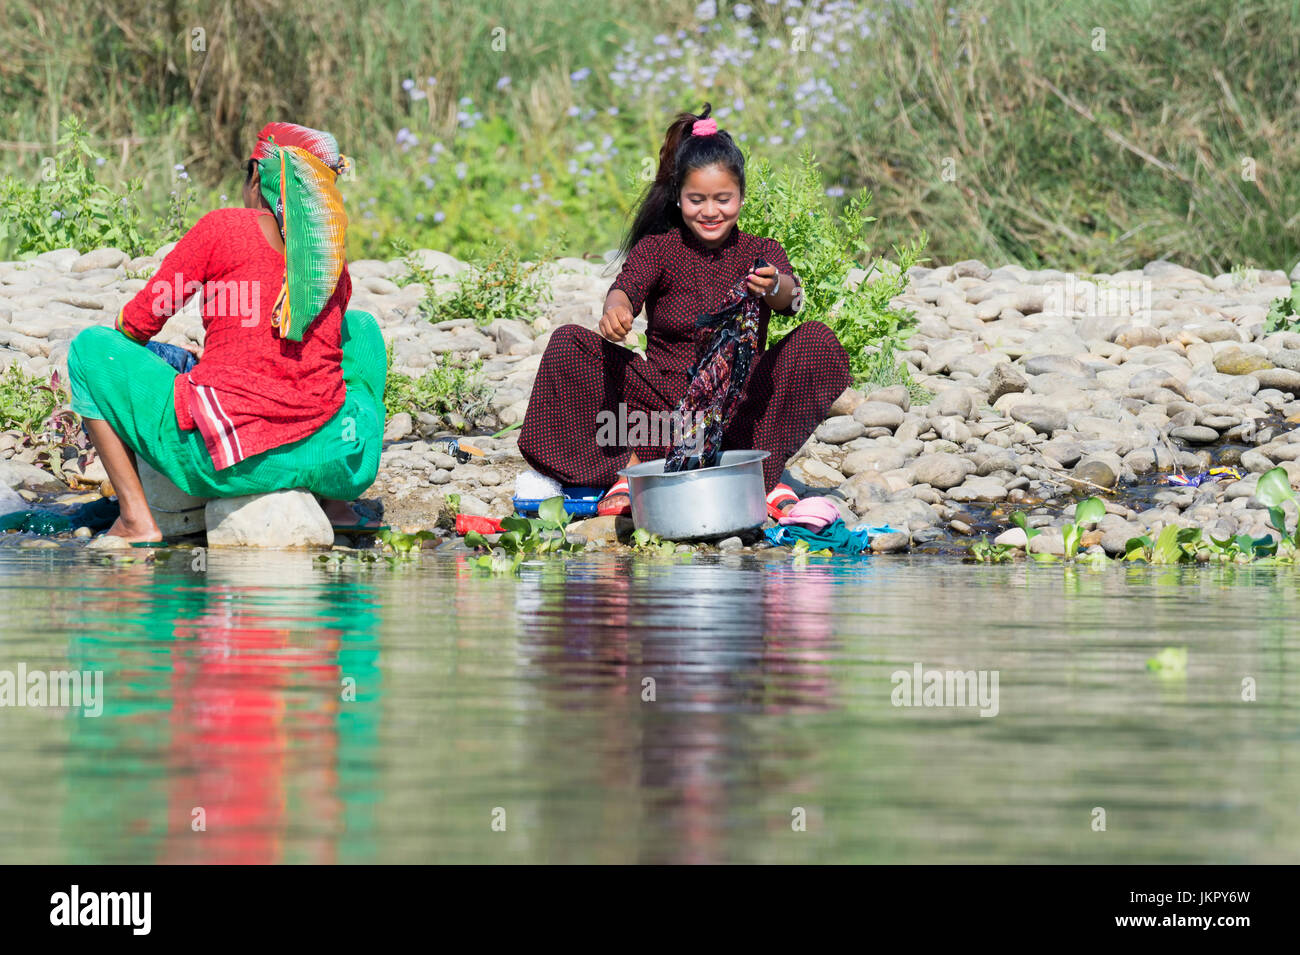 Nepalese women washing clothes in a river, For editorial Use only, Chitwan district, Nepal - Stock Image